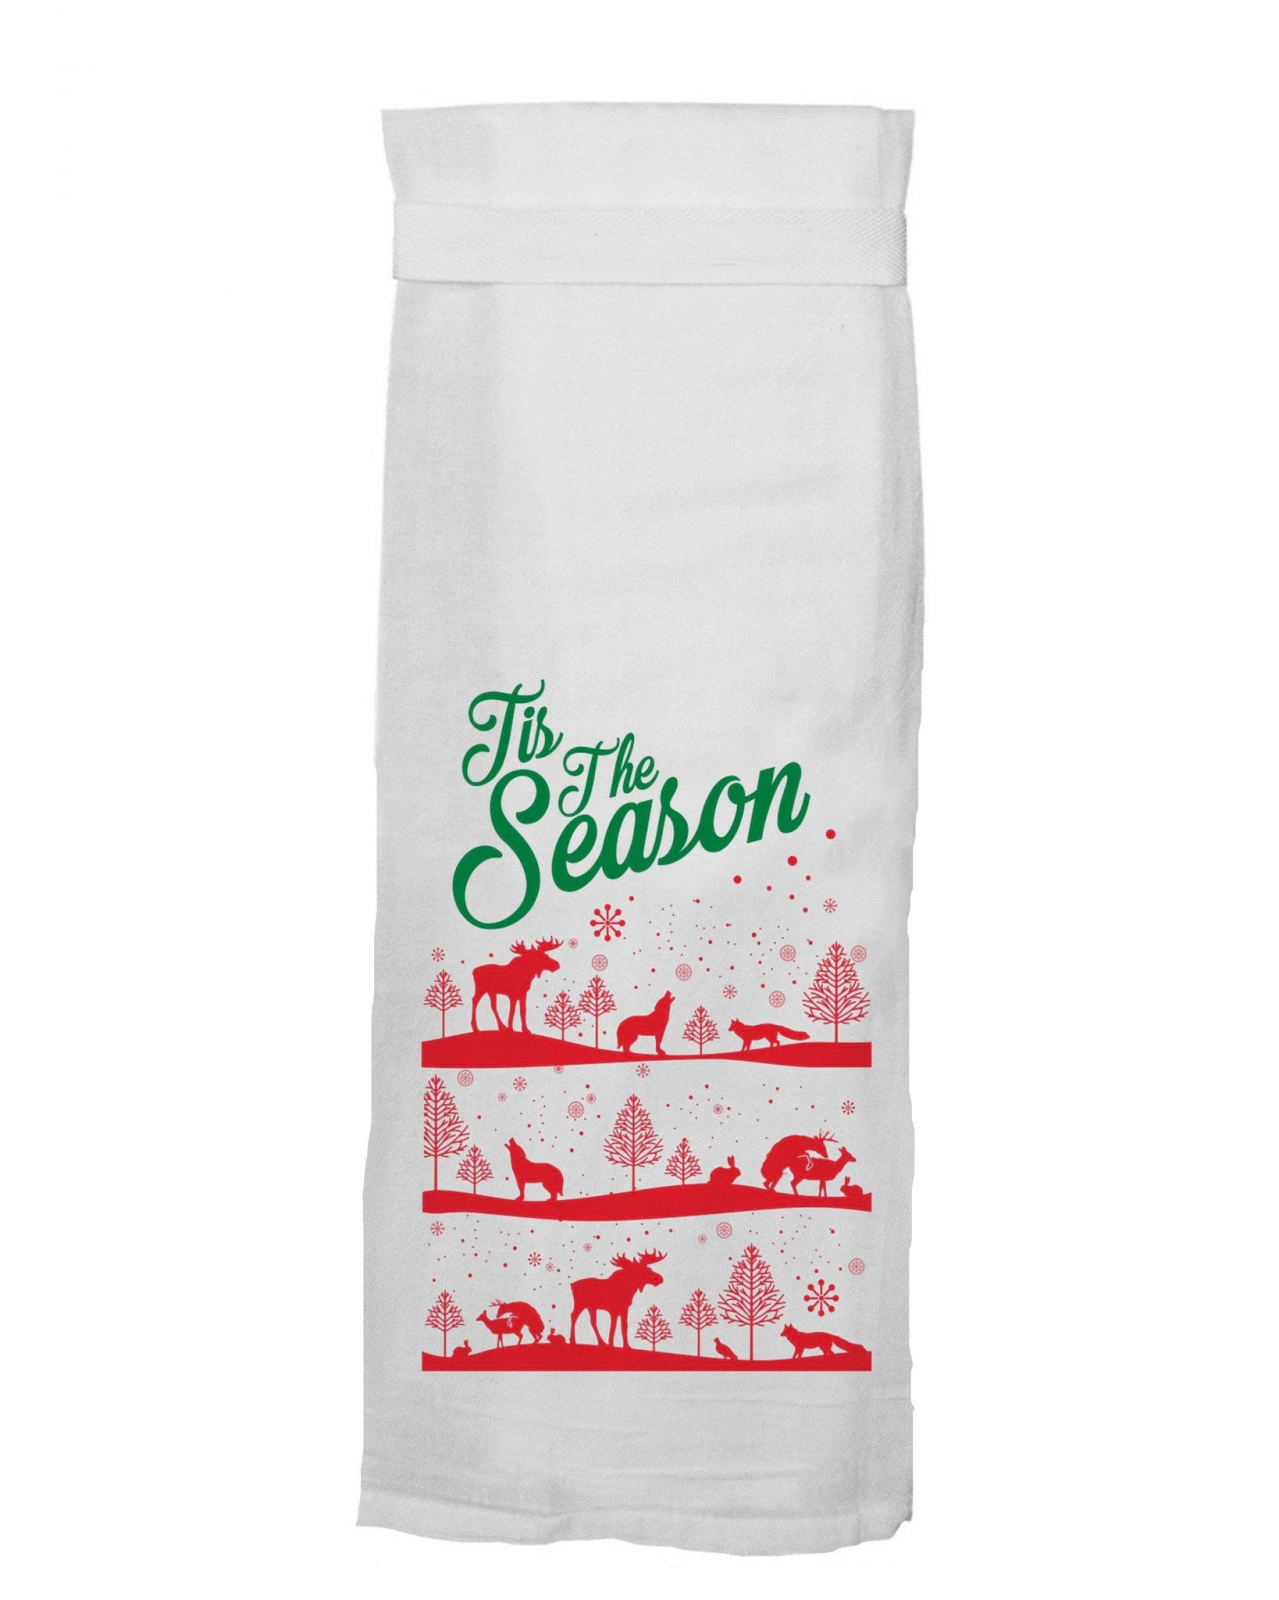 Flour Sack Towel - Tis the Season